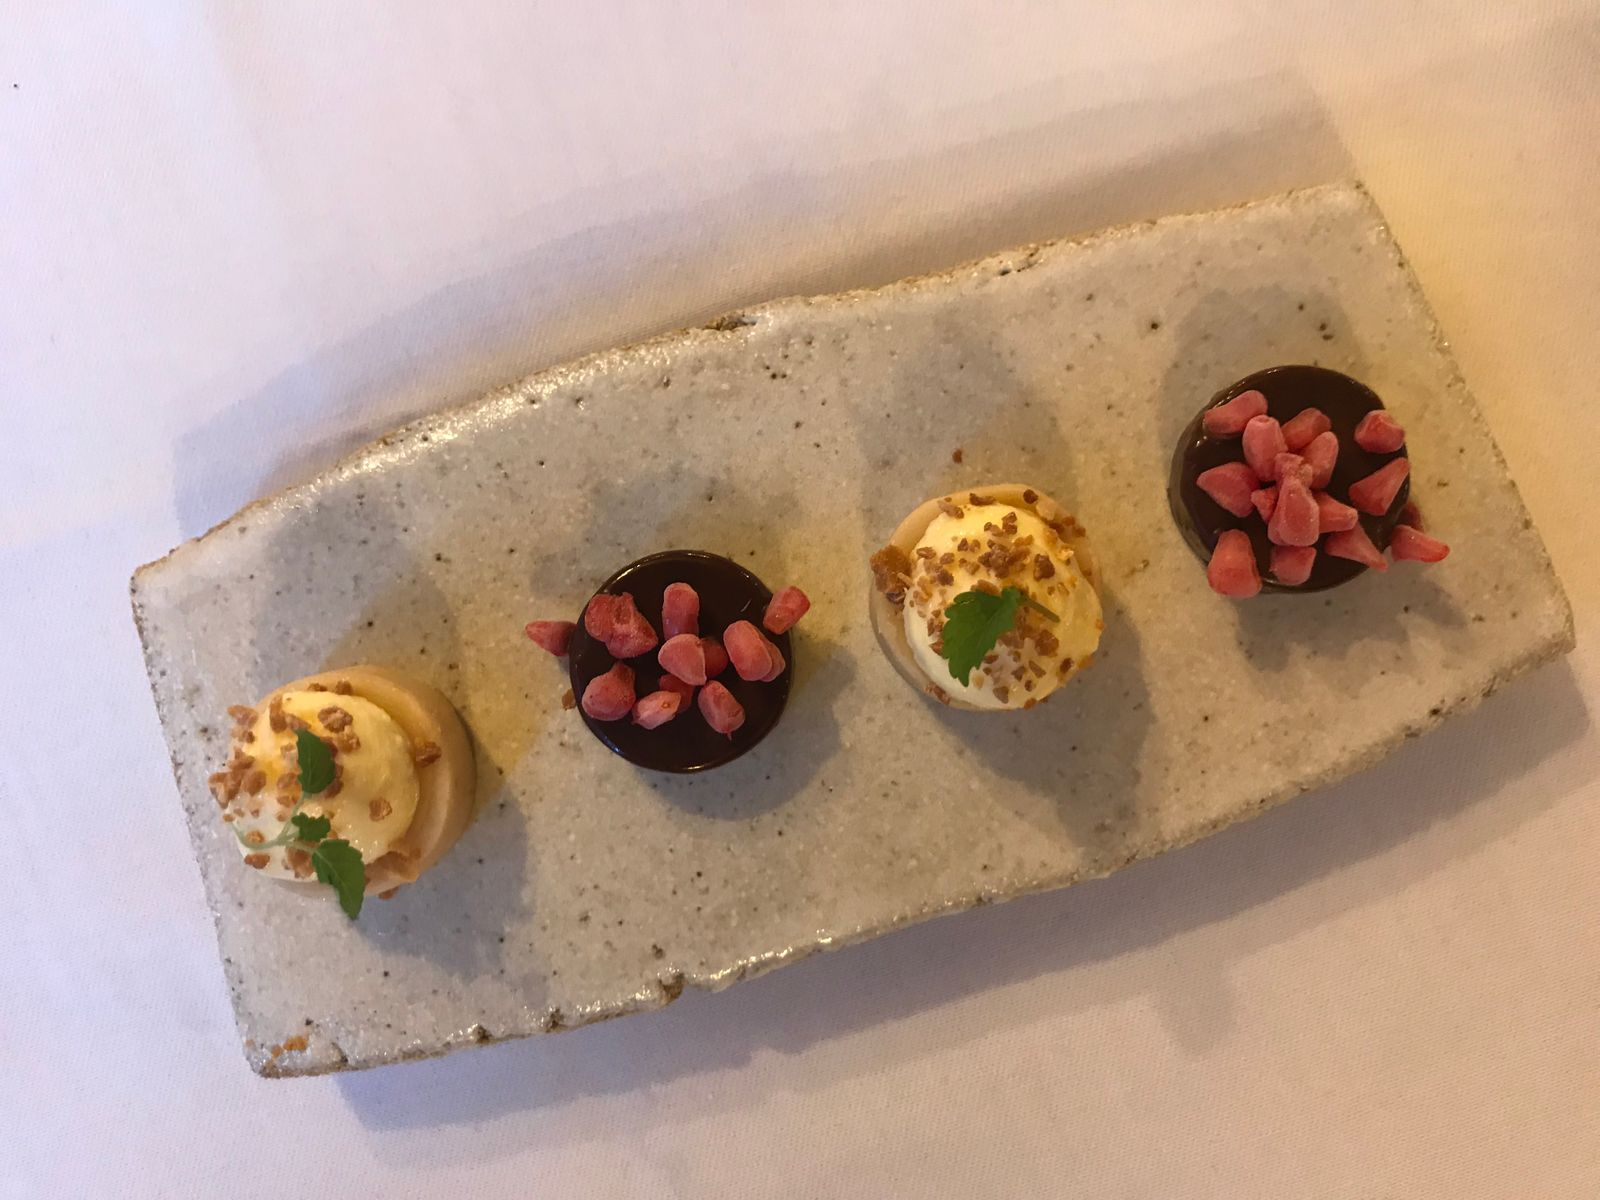 Final course and dessert at The Granary Newtown